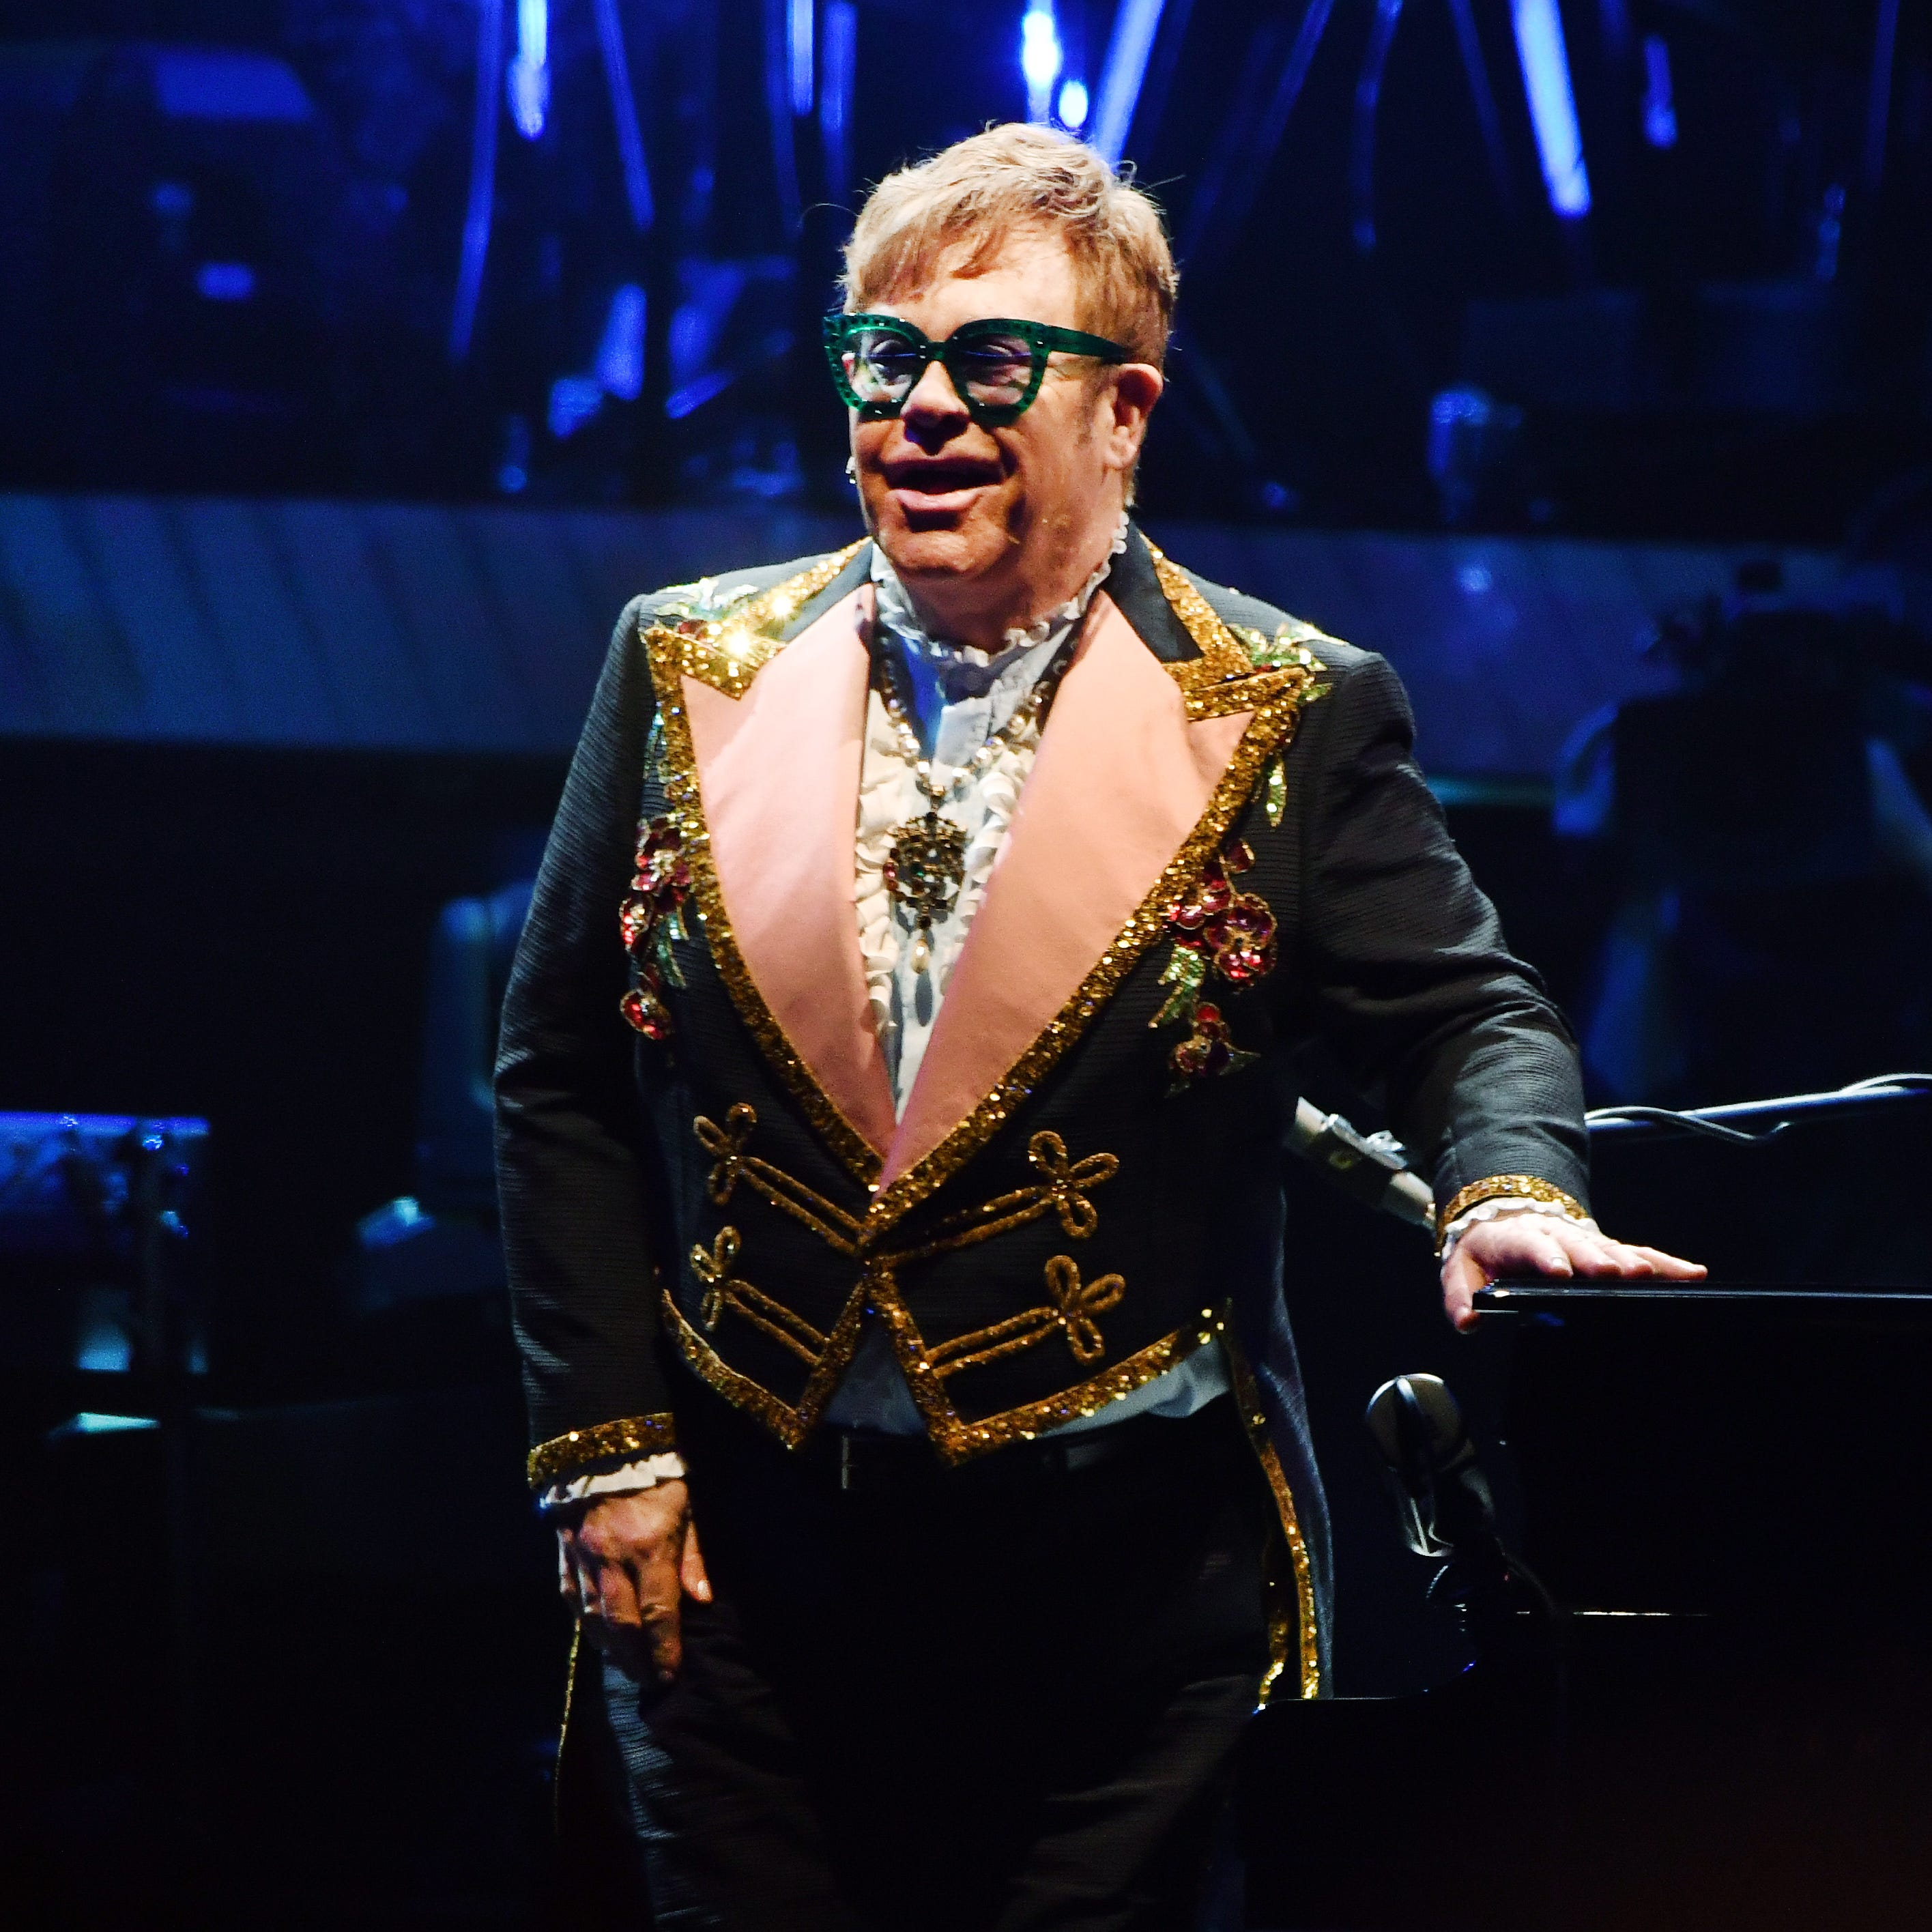 Review: Elton John bids a fond farewell at Little Caesars Arena